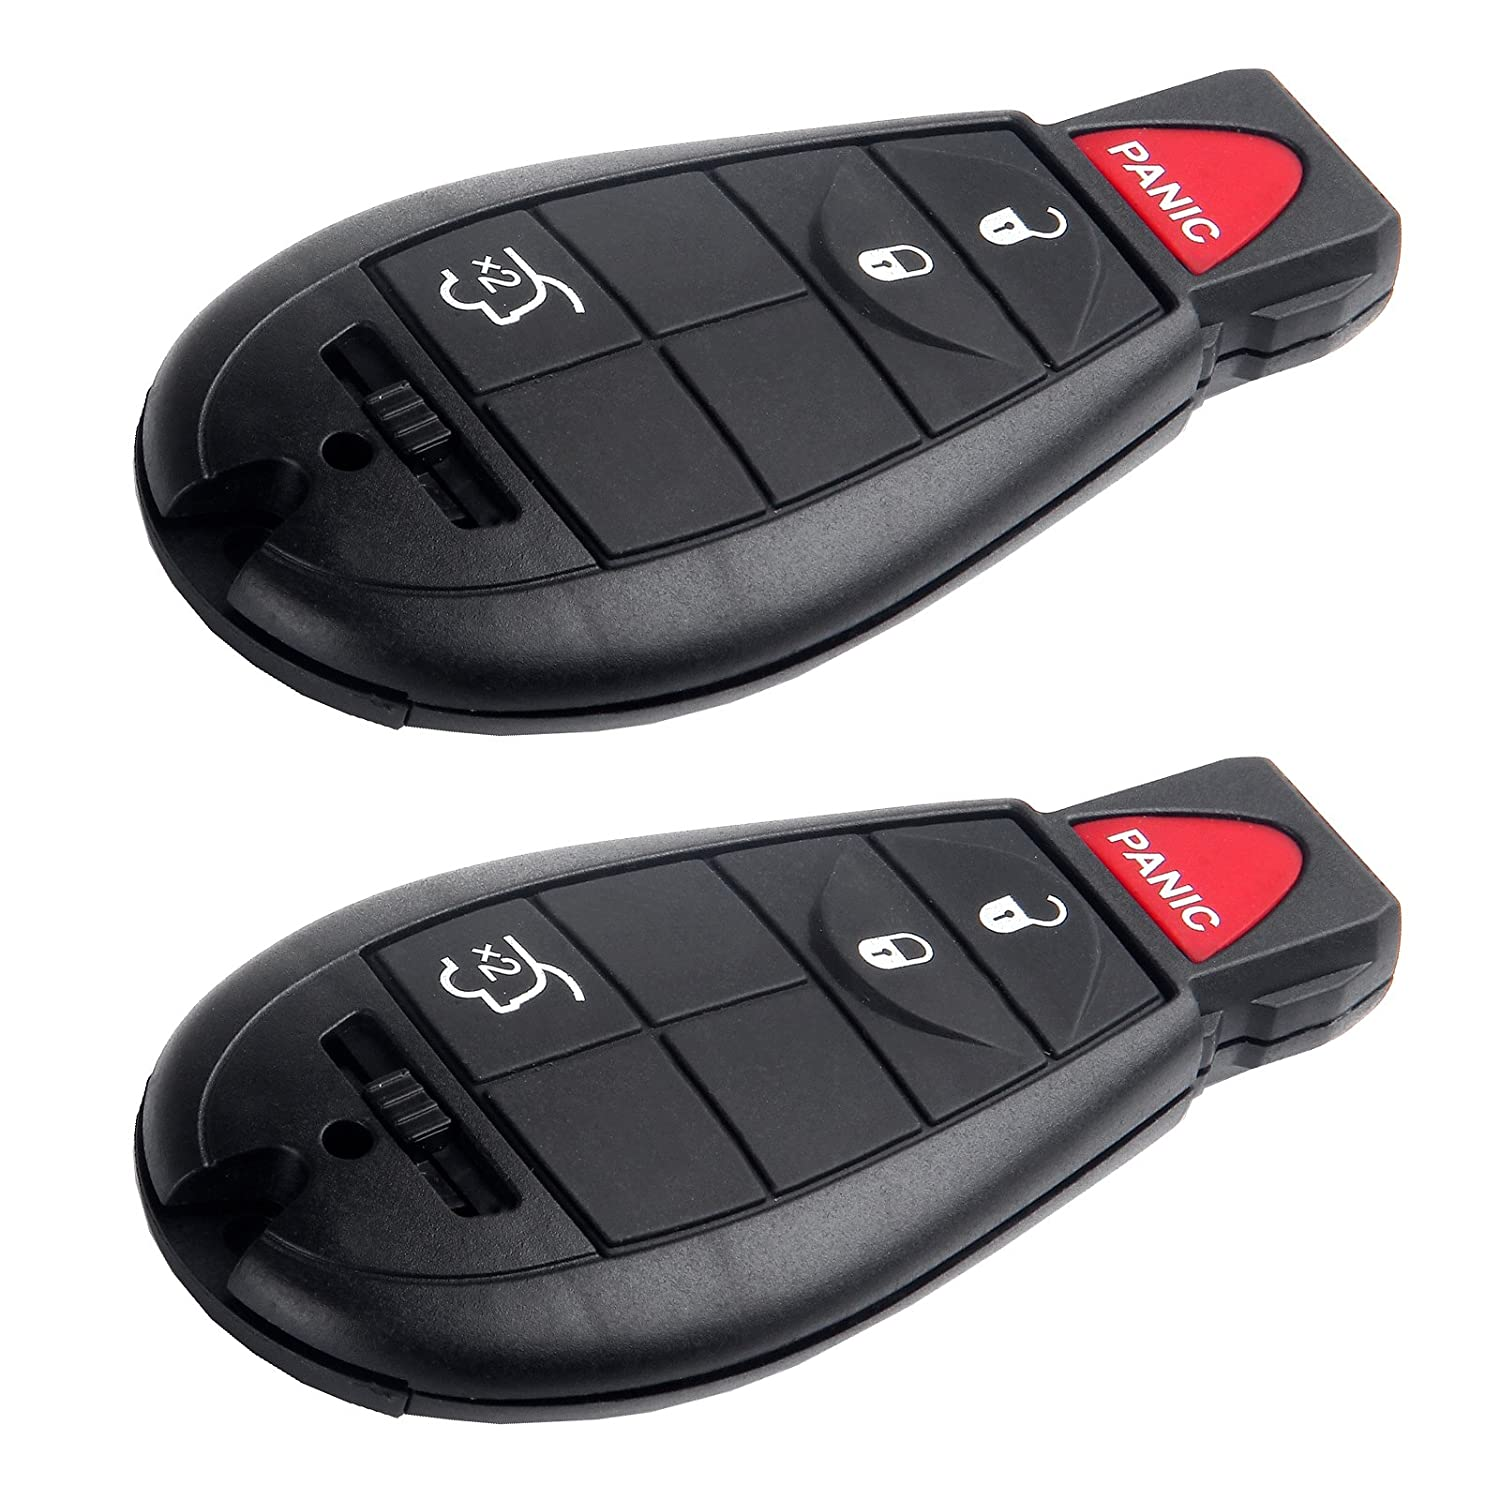 SCITOO Replacement fit for 1X Uncut 6 Buttons Keyless Entry Remote Car Key Fob 2008-2014 Chrysler Town Country//Dodge Grand Caravan M3N5WY783X IYZ-C01C